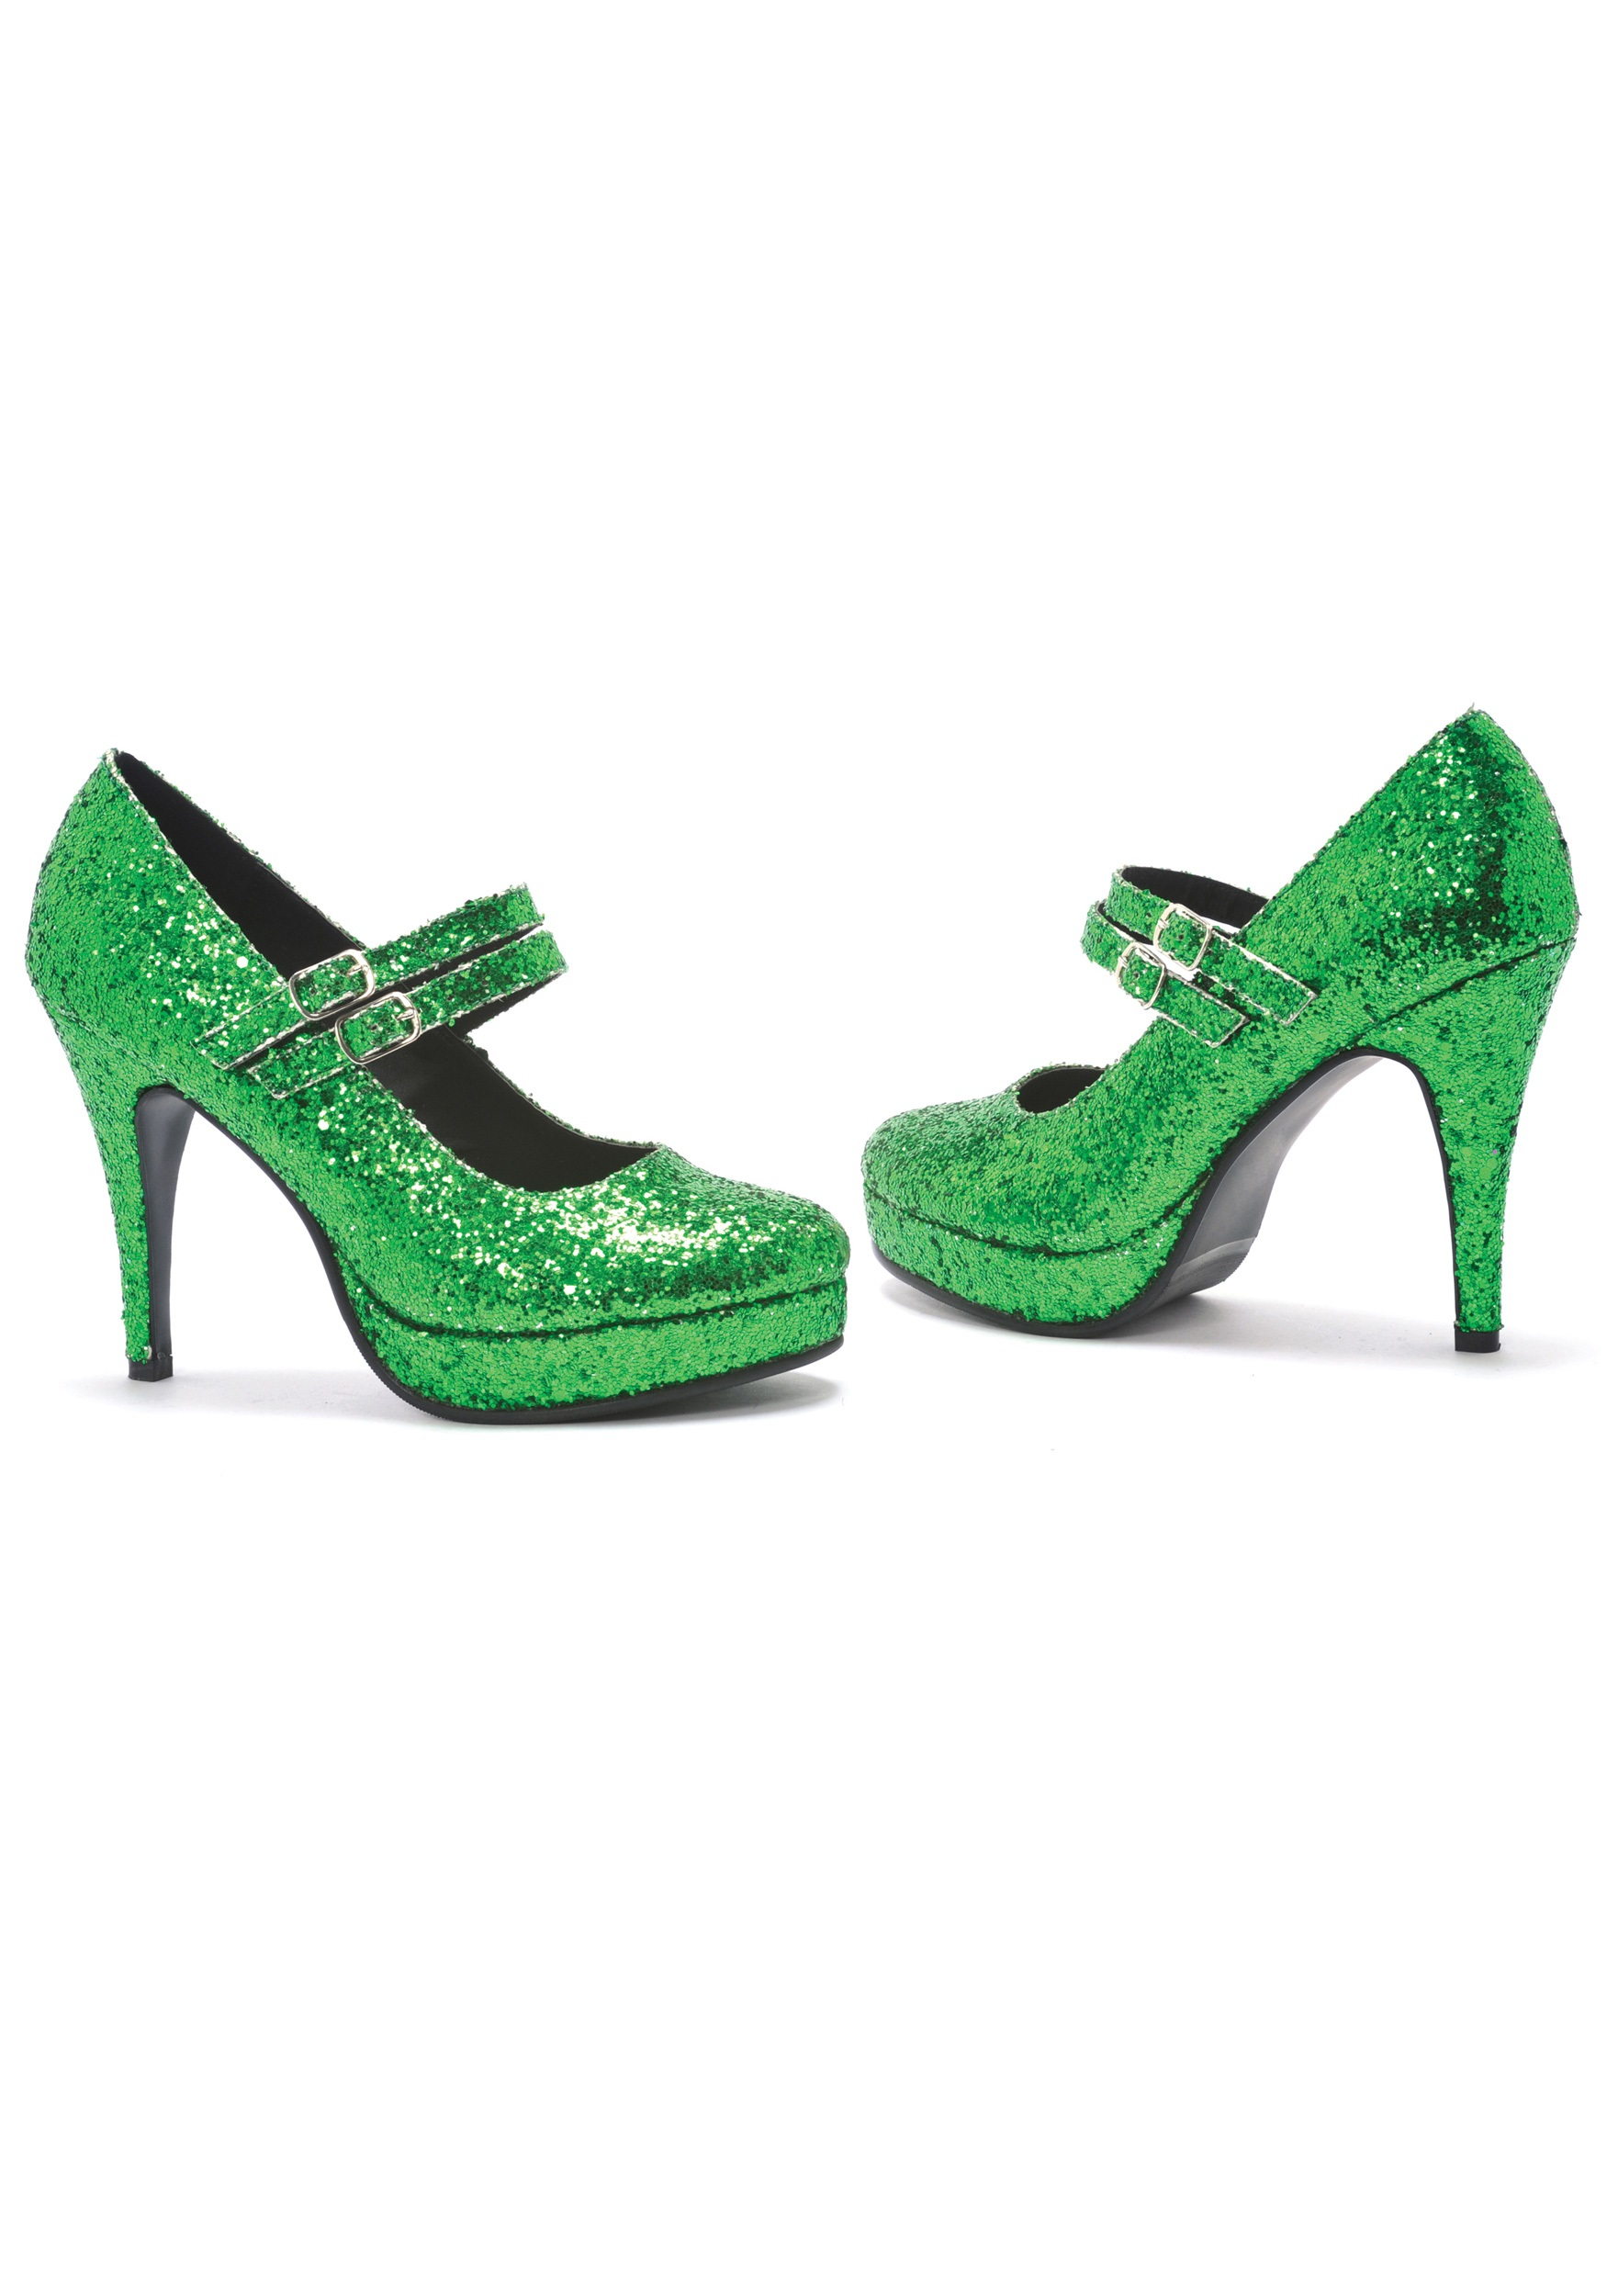 Green Glitter Shoes